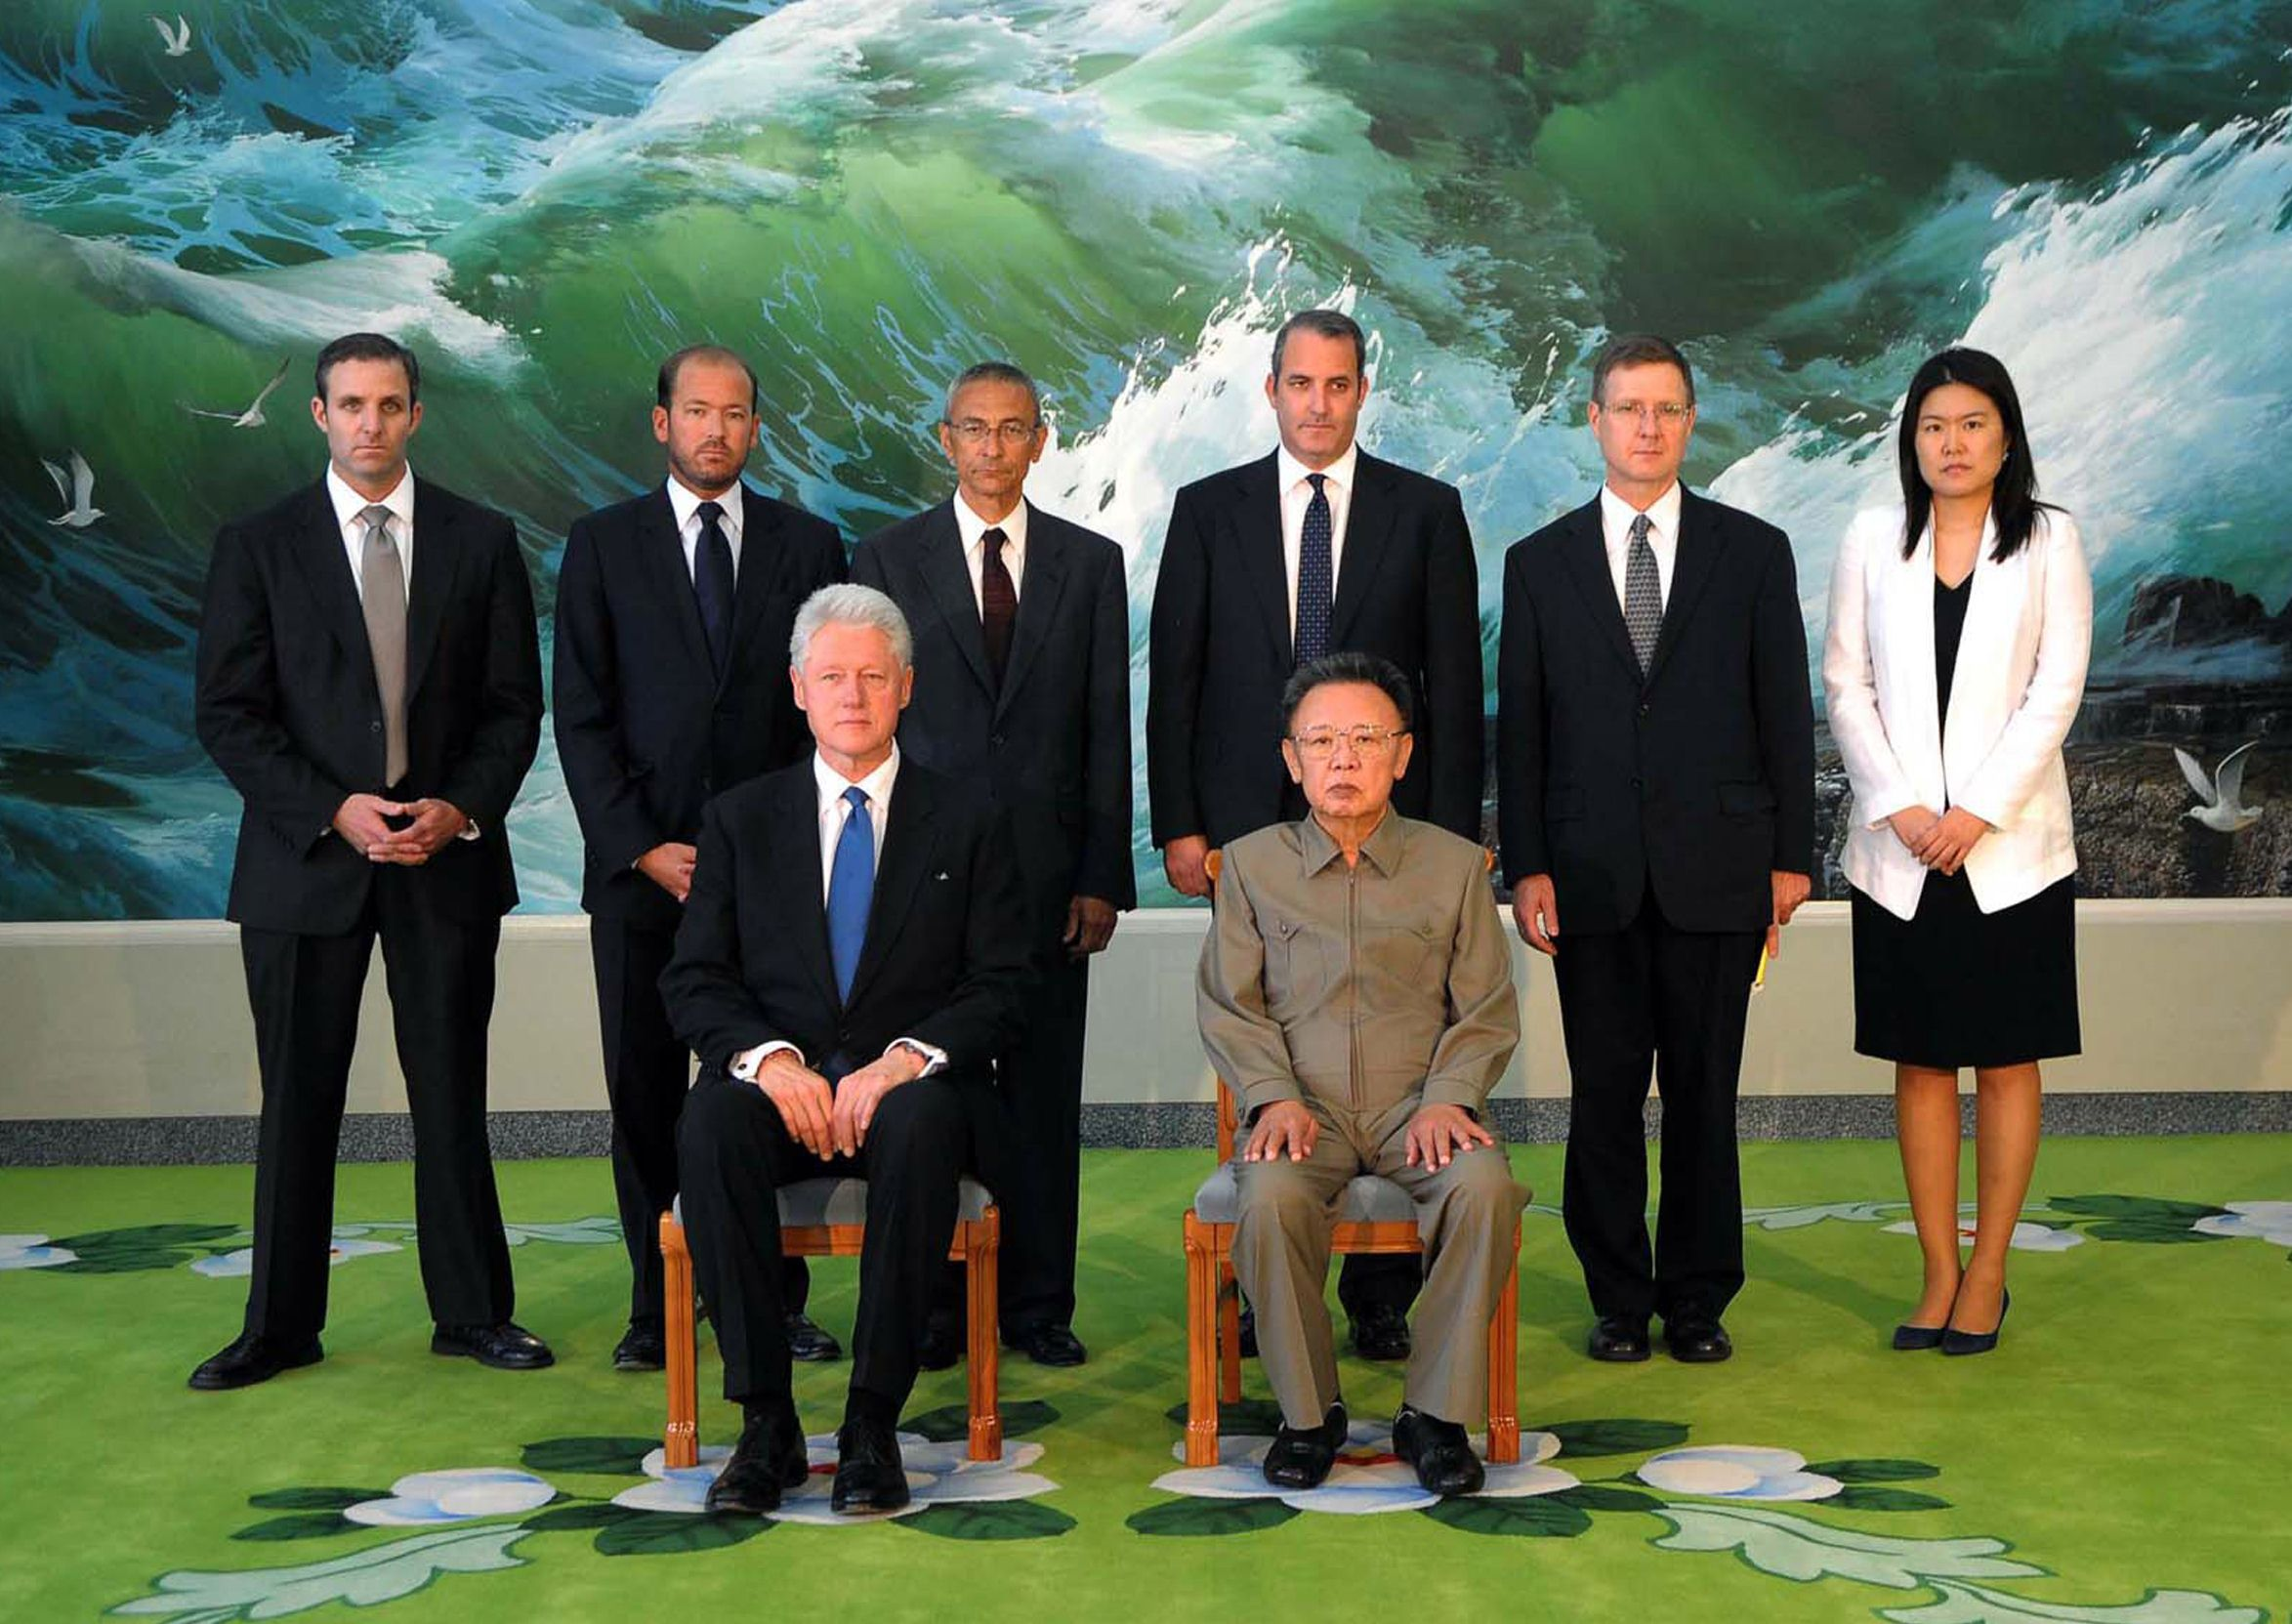 North Korean leader Kim Jong Il poses with former U.S. President Bill Clinton and members of his delegation in Pyongyang on Aug. 4, 2009. | AFP-JIJI